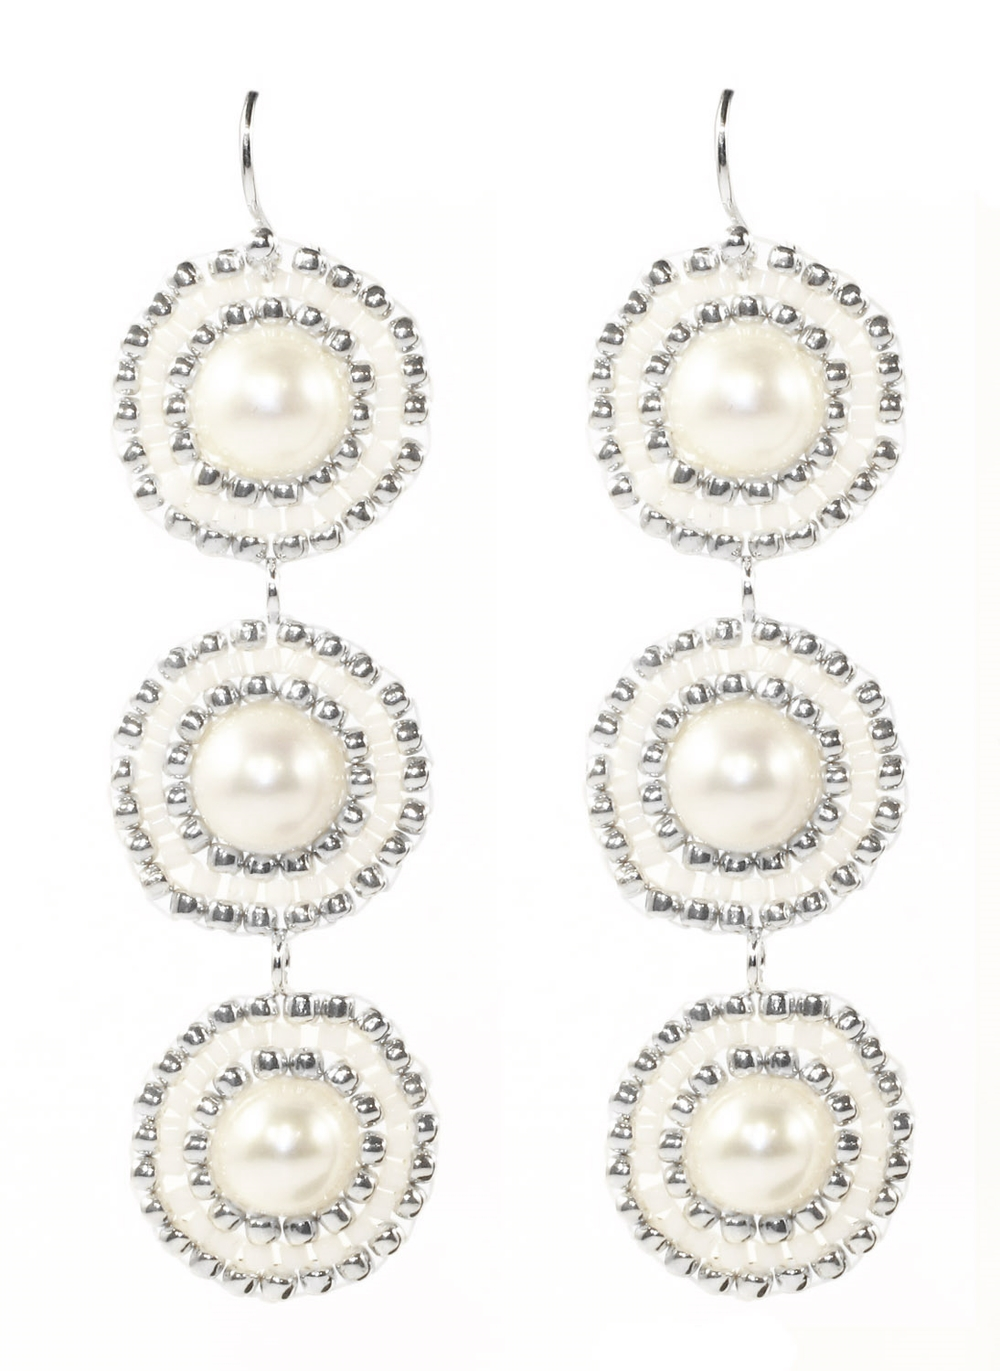 HAND WOVEN WHITE FRESHWATER PEARLS AND SILVER MEDALLION EARRINGS